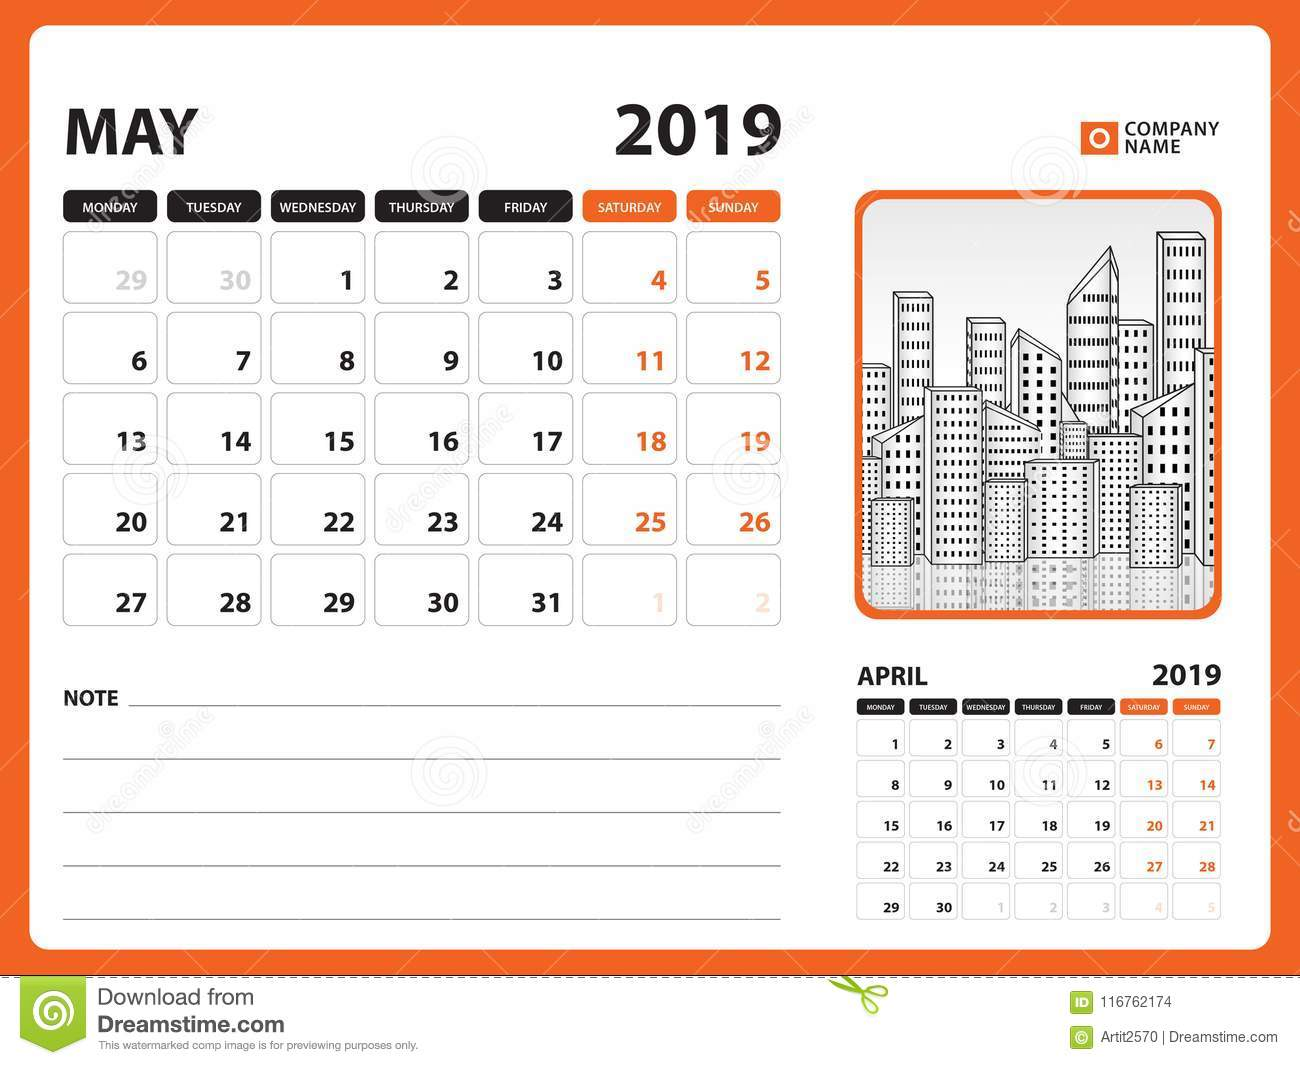 May Printable Calendar.Desk Calendar For May 2019 Template Printable Calendar Planner